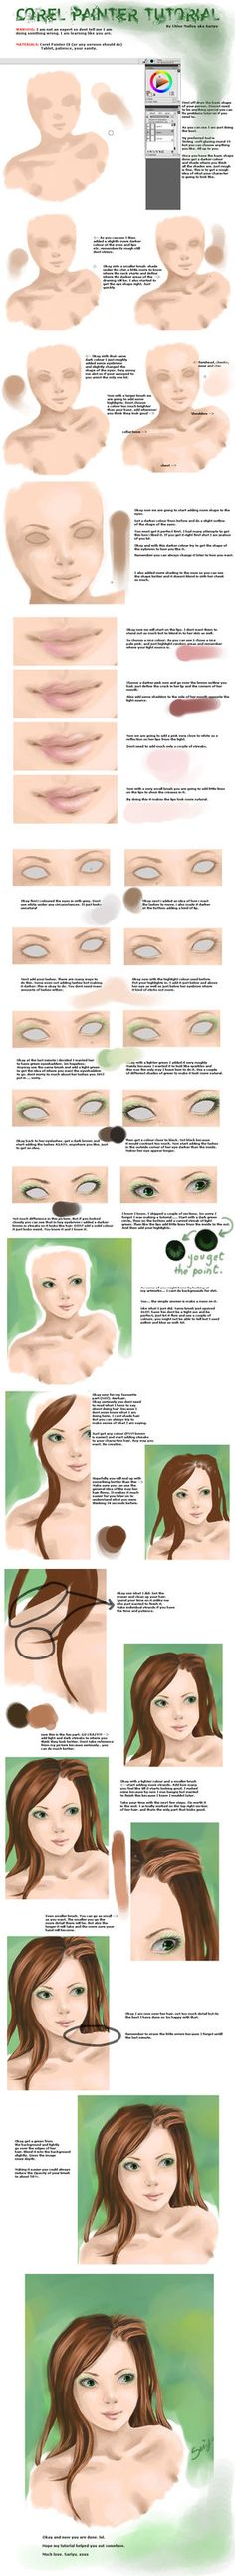 Corel Painter Tutorial by *Sariyu on deviantART